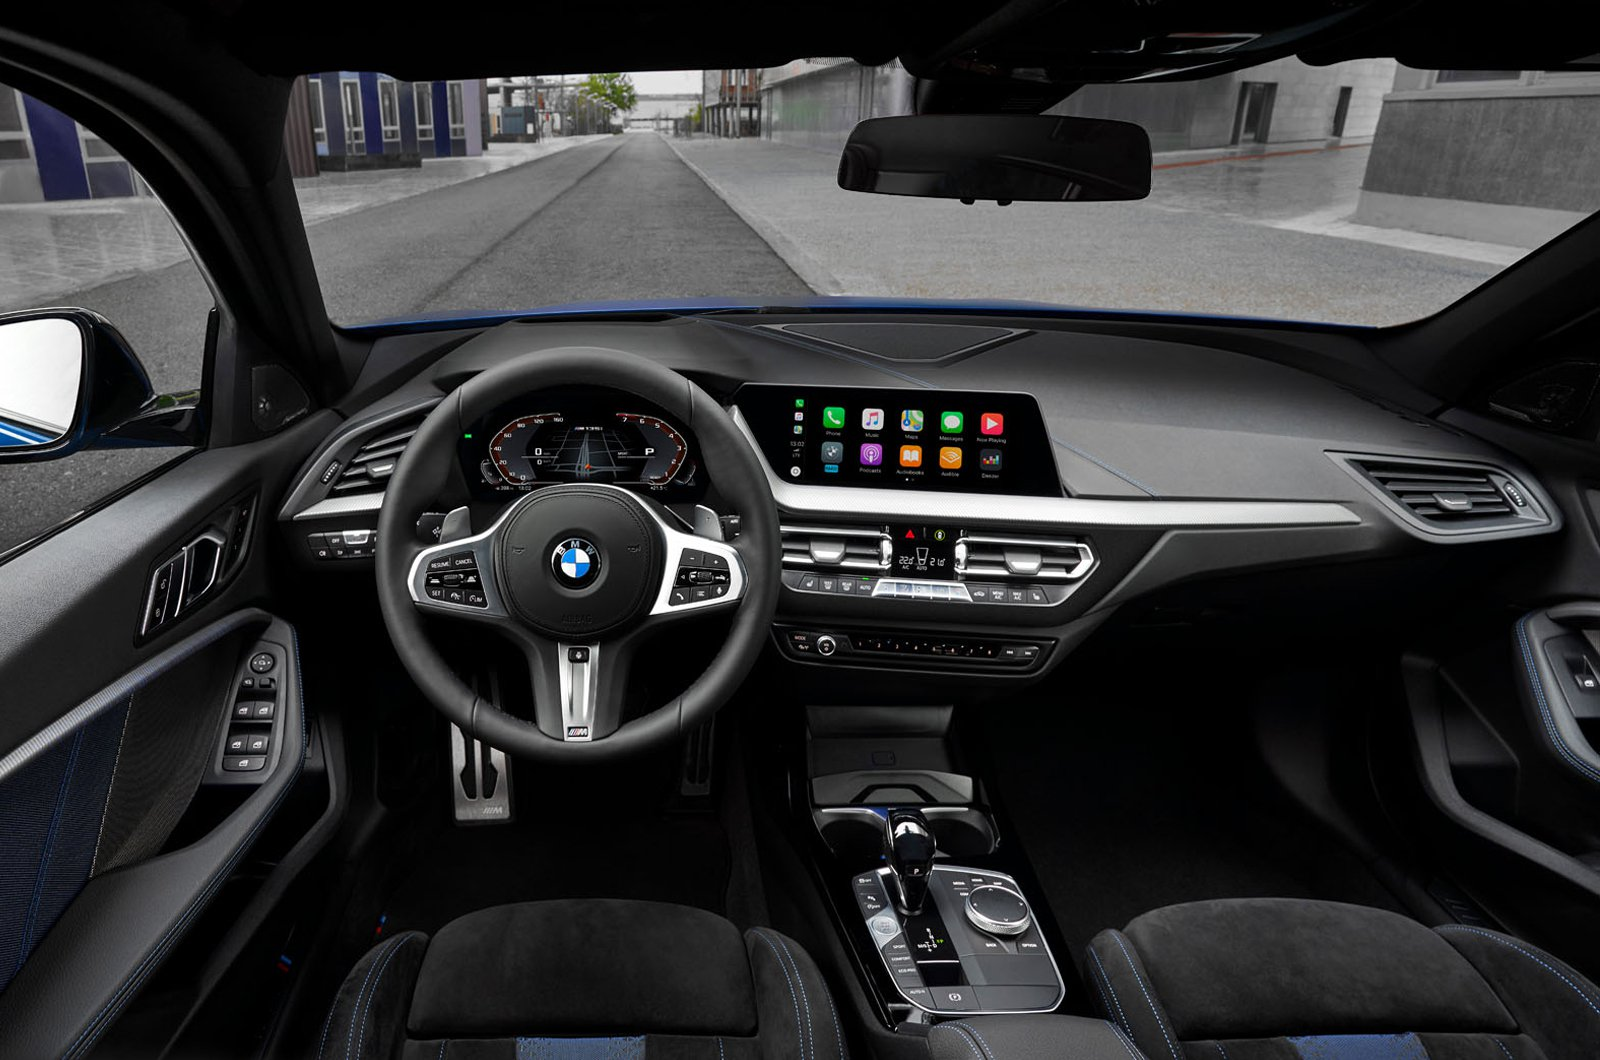 2020 BMW 1 Series dashboard